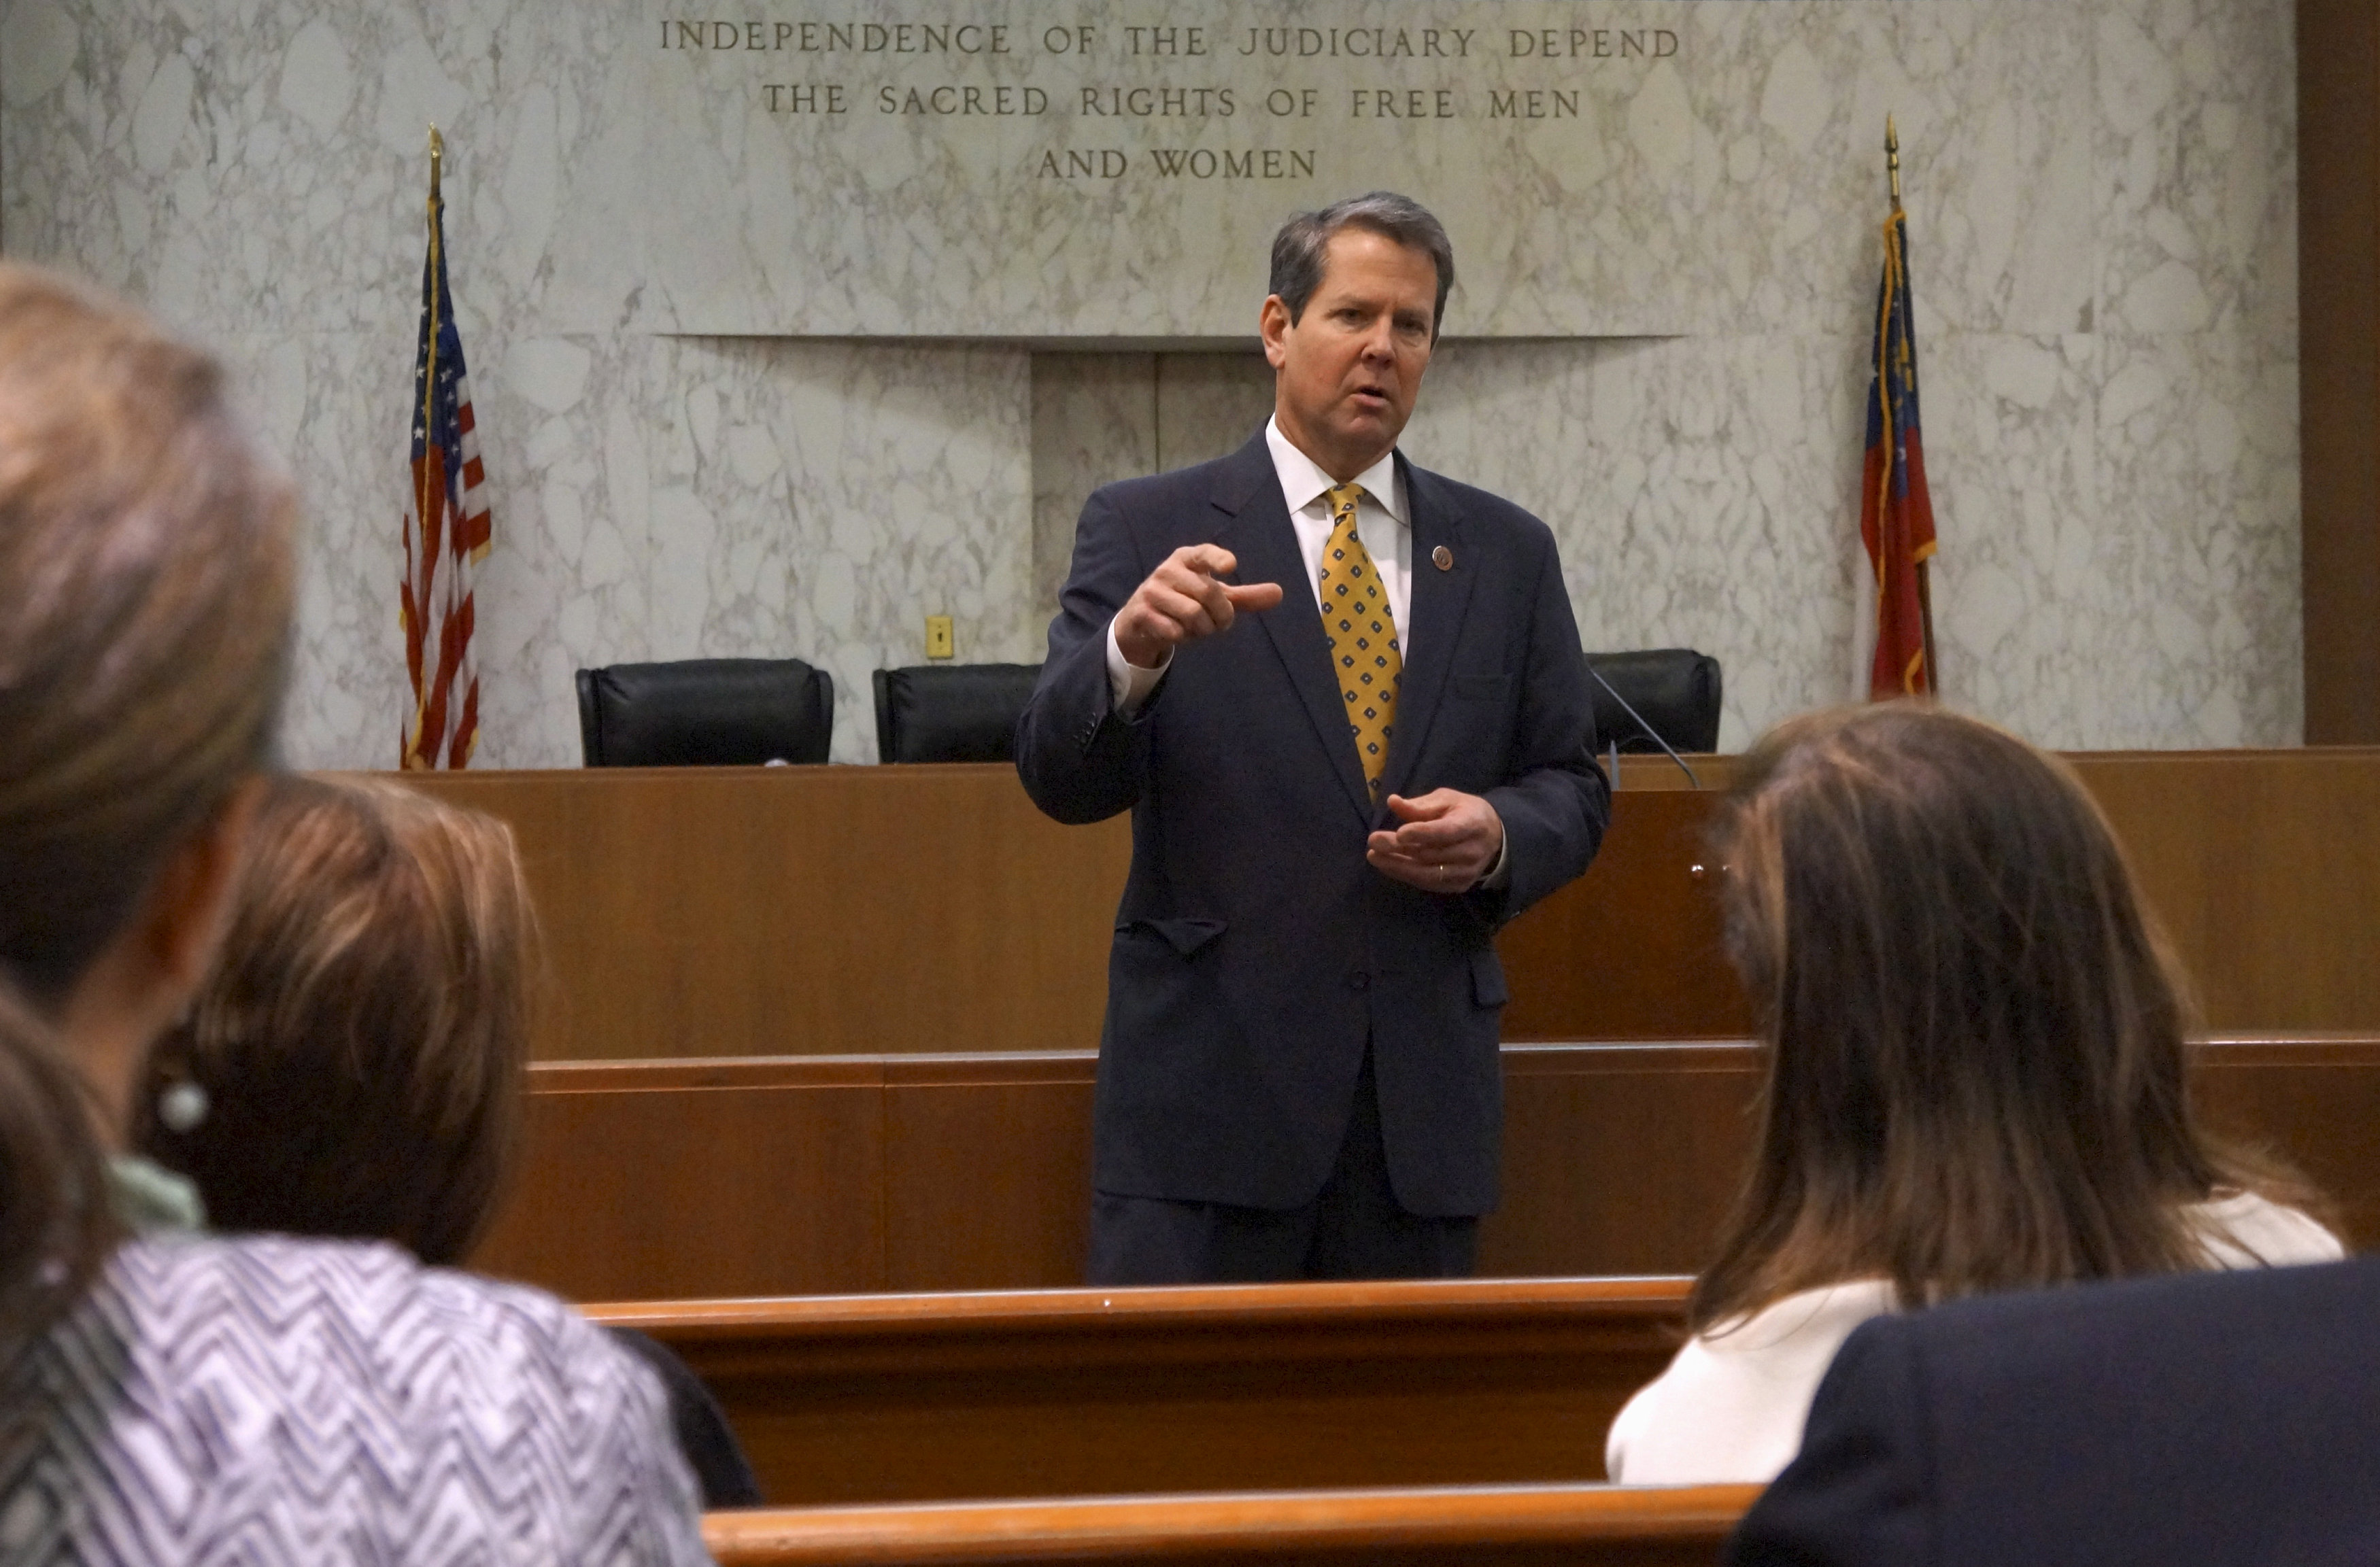 """FILE PHOTO: Georgia Secretary of State Brian Kemp speaks with visitors to the state capitol about the """"SEC primary"""" involving a group of southern states voting next month in Atlanta, Georgia February 24, 2016. REUTERS/Letitia Stein/File Photo"""